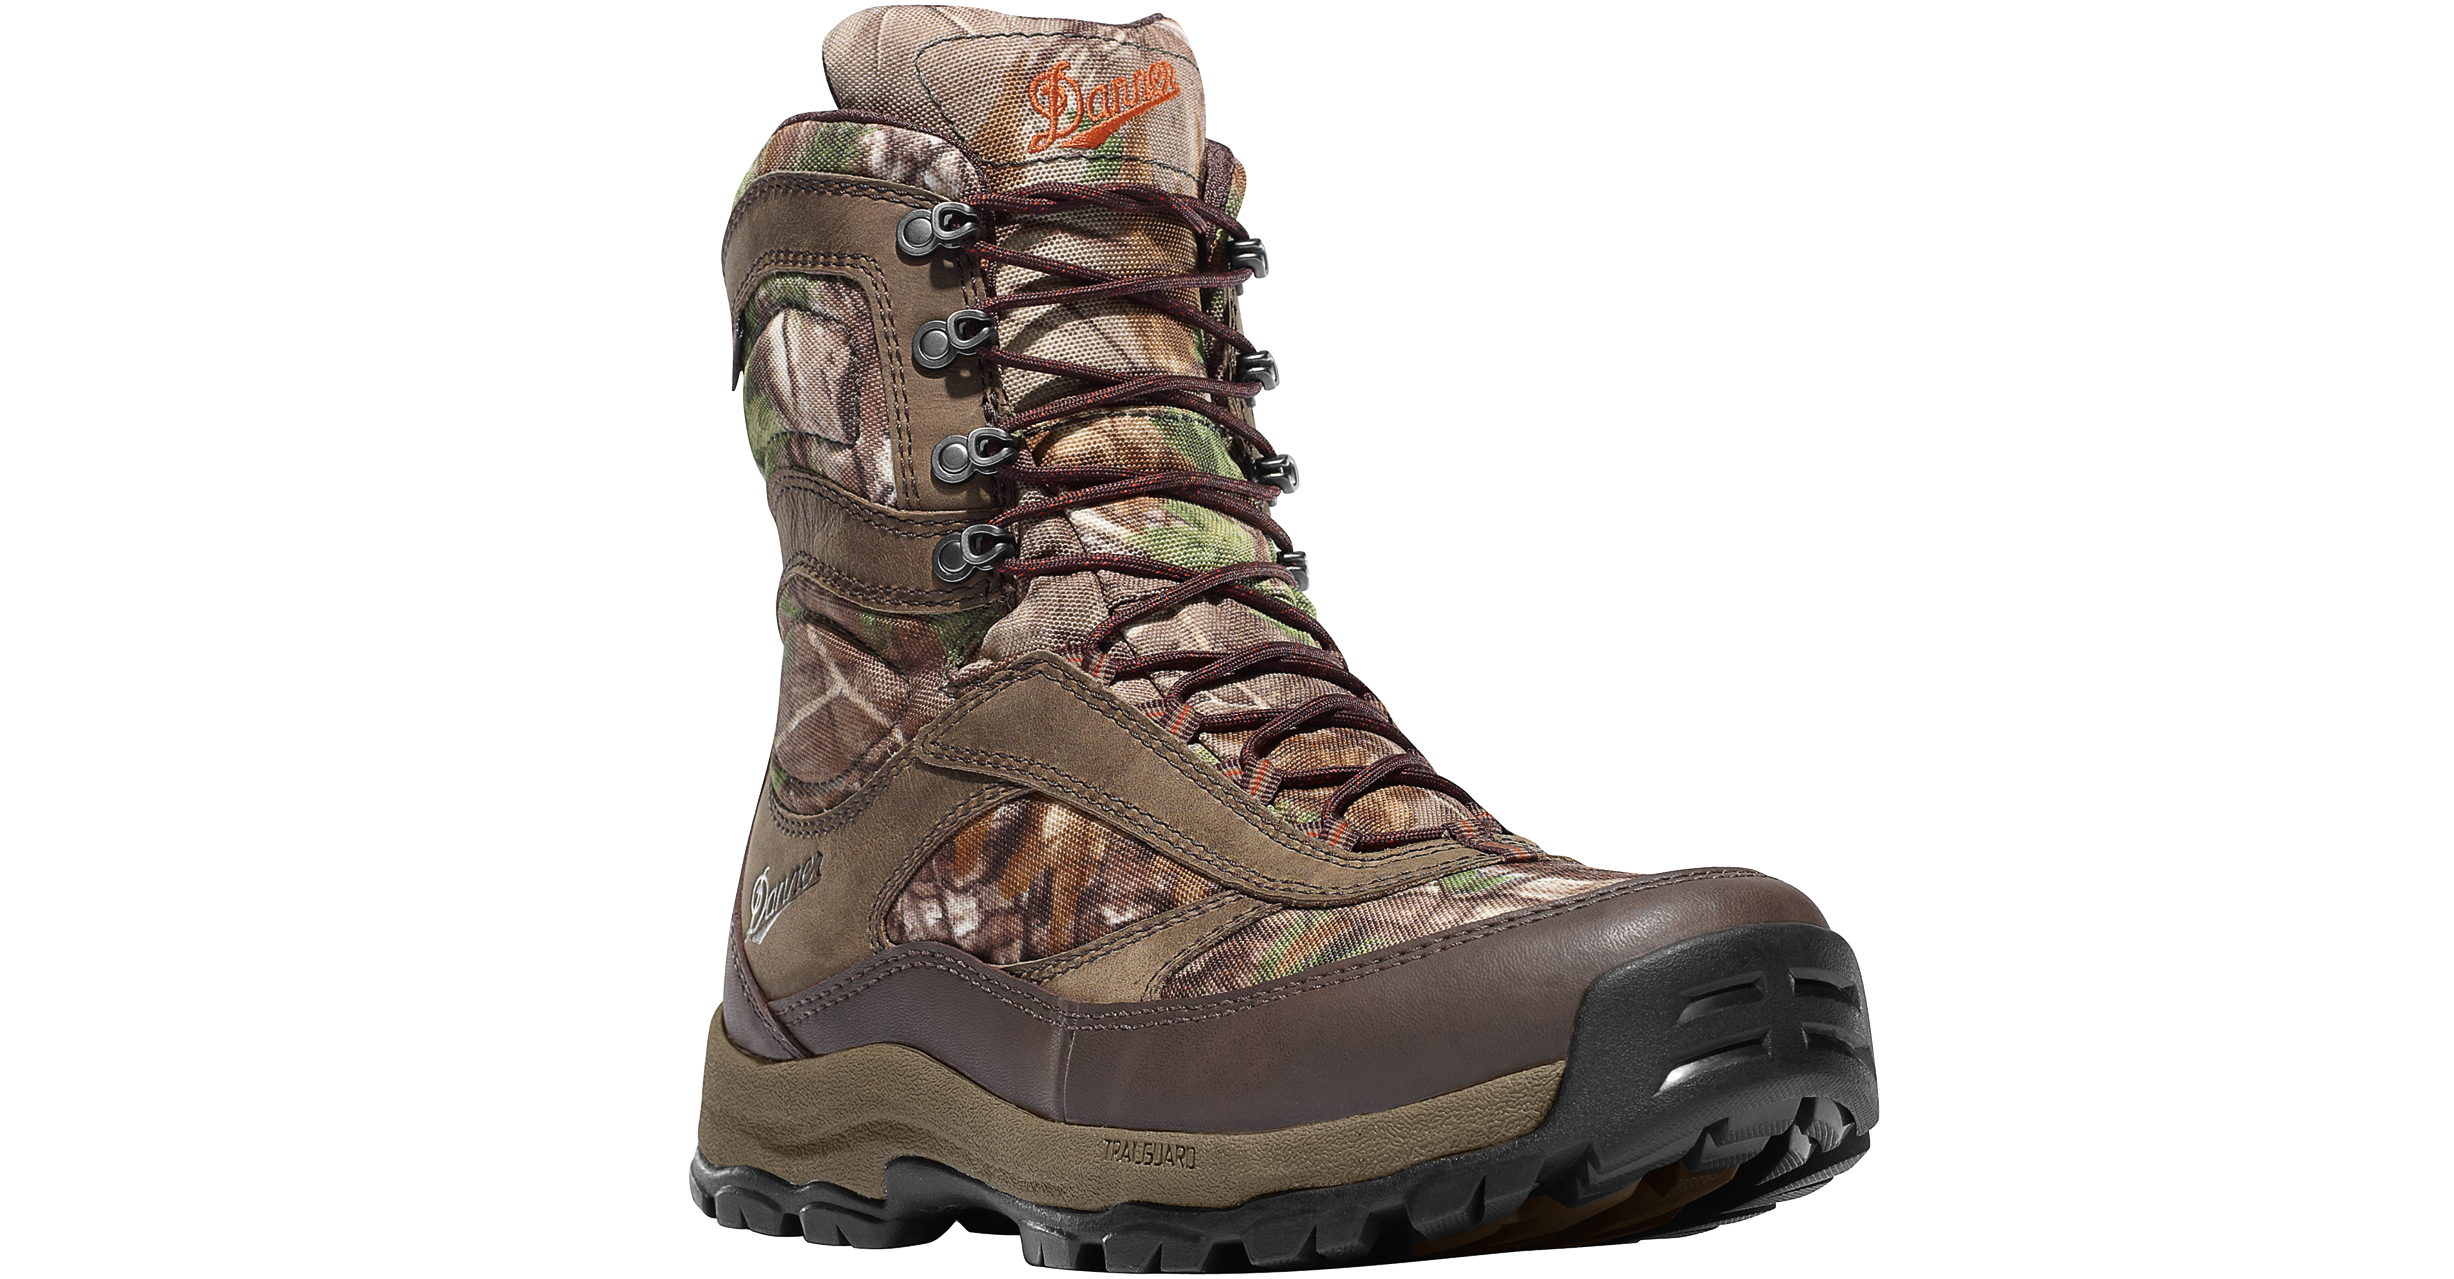 48c8ab1988f Danner's High Ground: Is This the Best Hunting Boot Ever Made ...